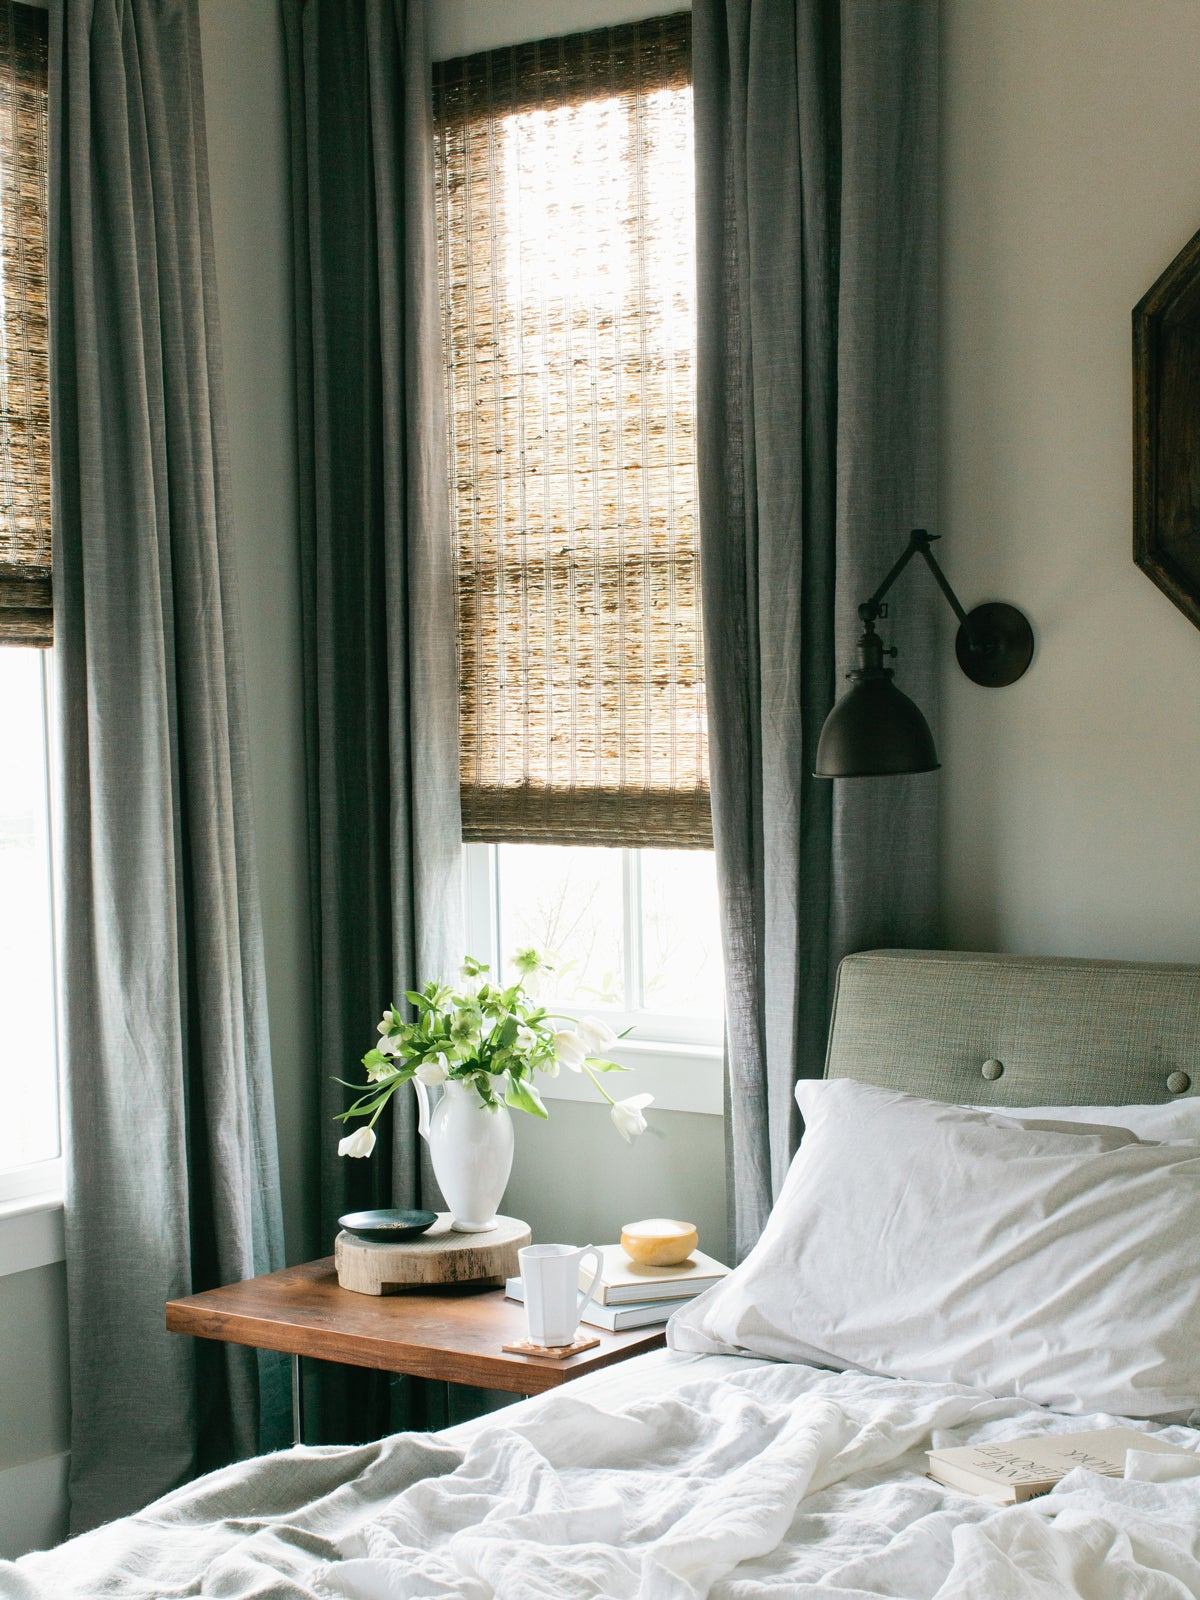 Tips for Making Your Childhood Bedroom Work as a 20-Something